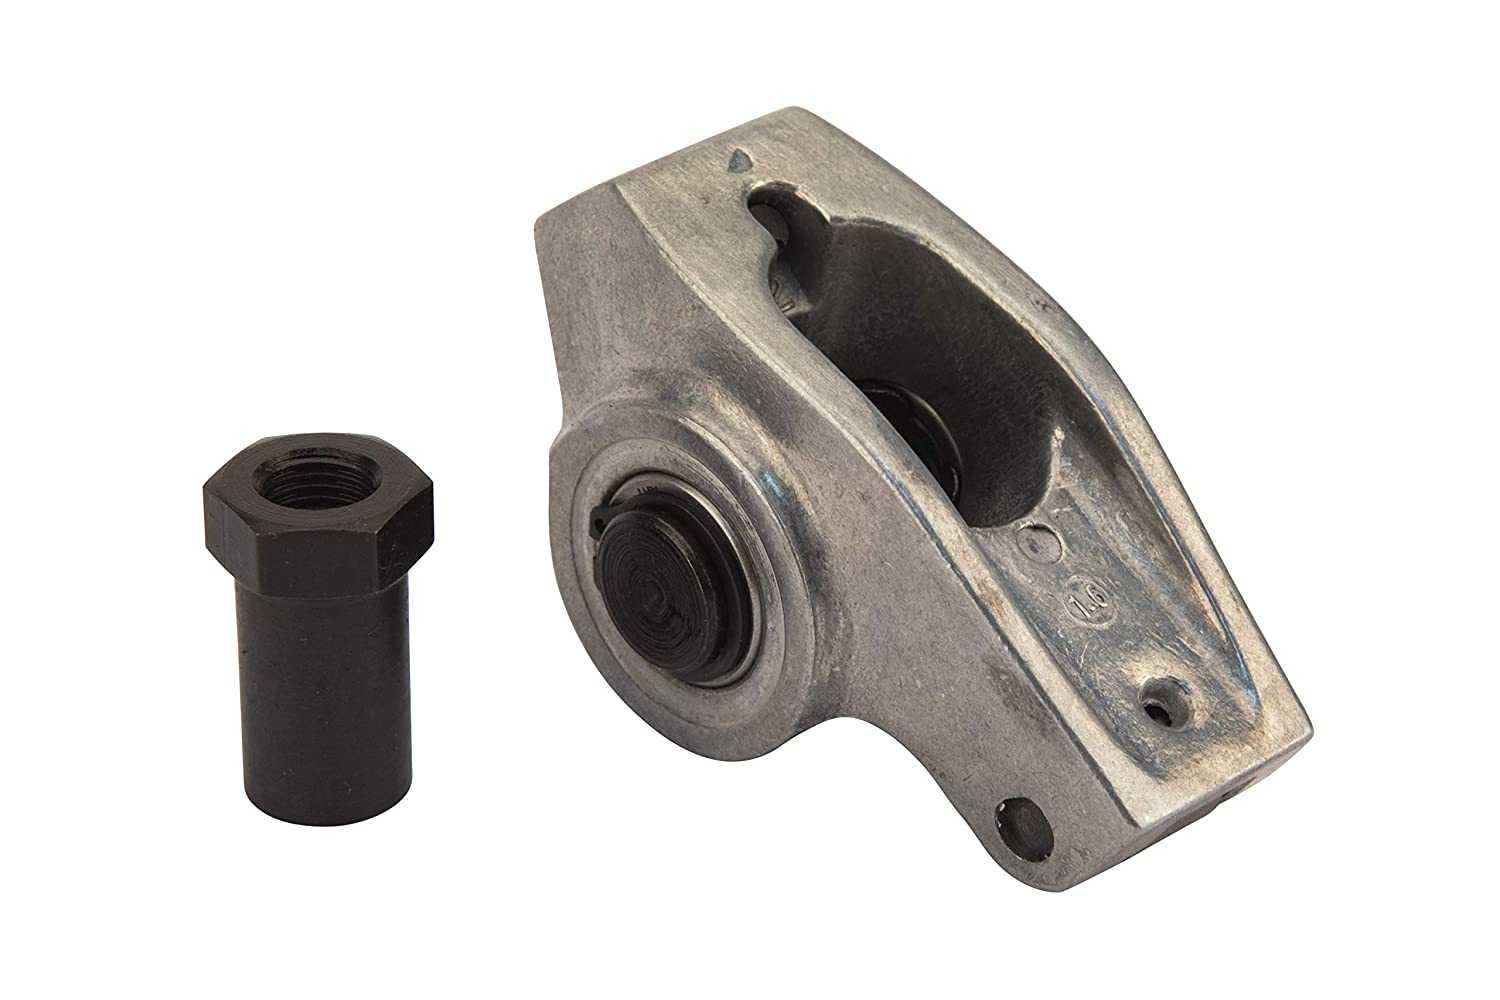 Dodge and Ford Small Block w// 3//8 Stud Chevrolet V6 Crane Cams 11746-1 Energizer Rocker w// 1.5 Ratio for AMC